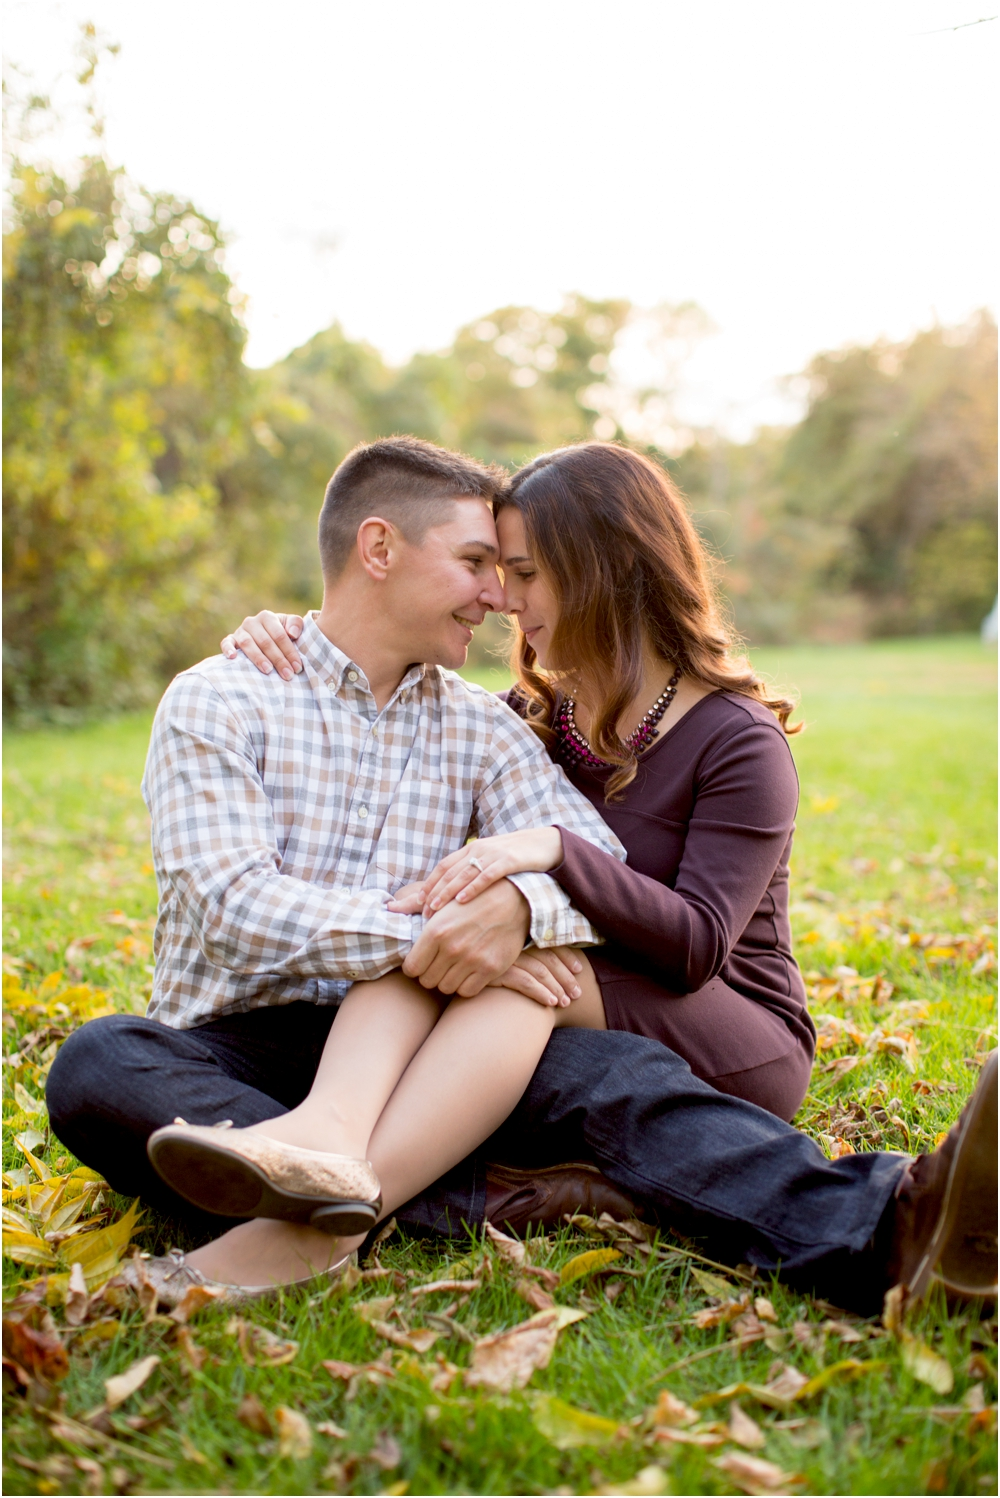 christina kyle engagement session elkridge furnace inn living radiant photograph photos_0040.jpg